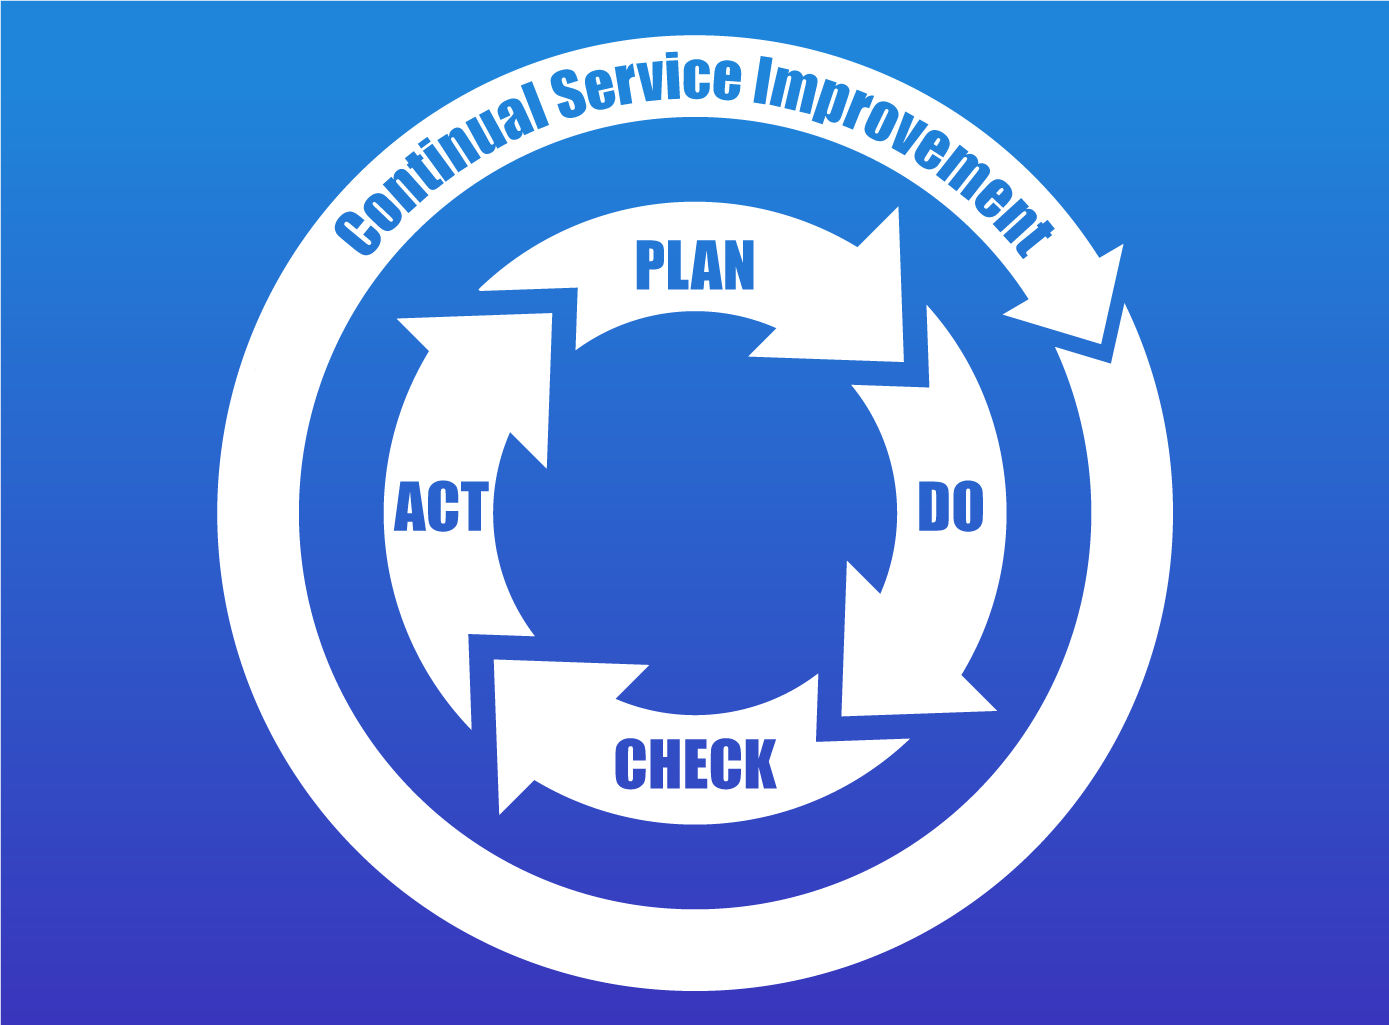 Continual-Service-Improvement